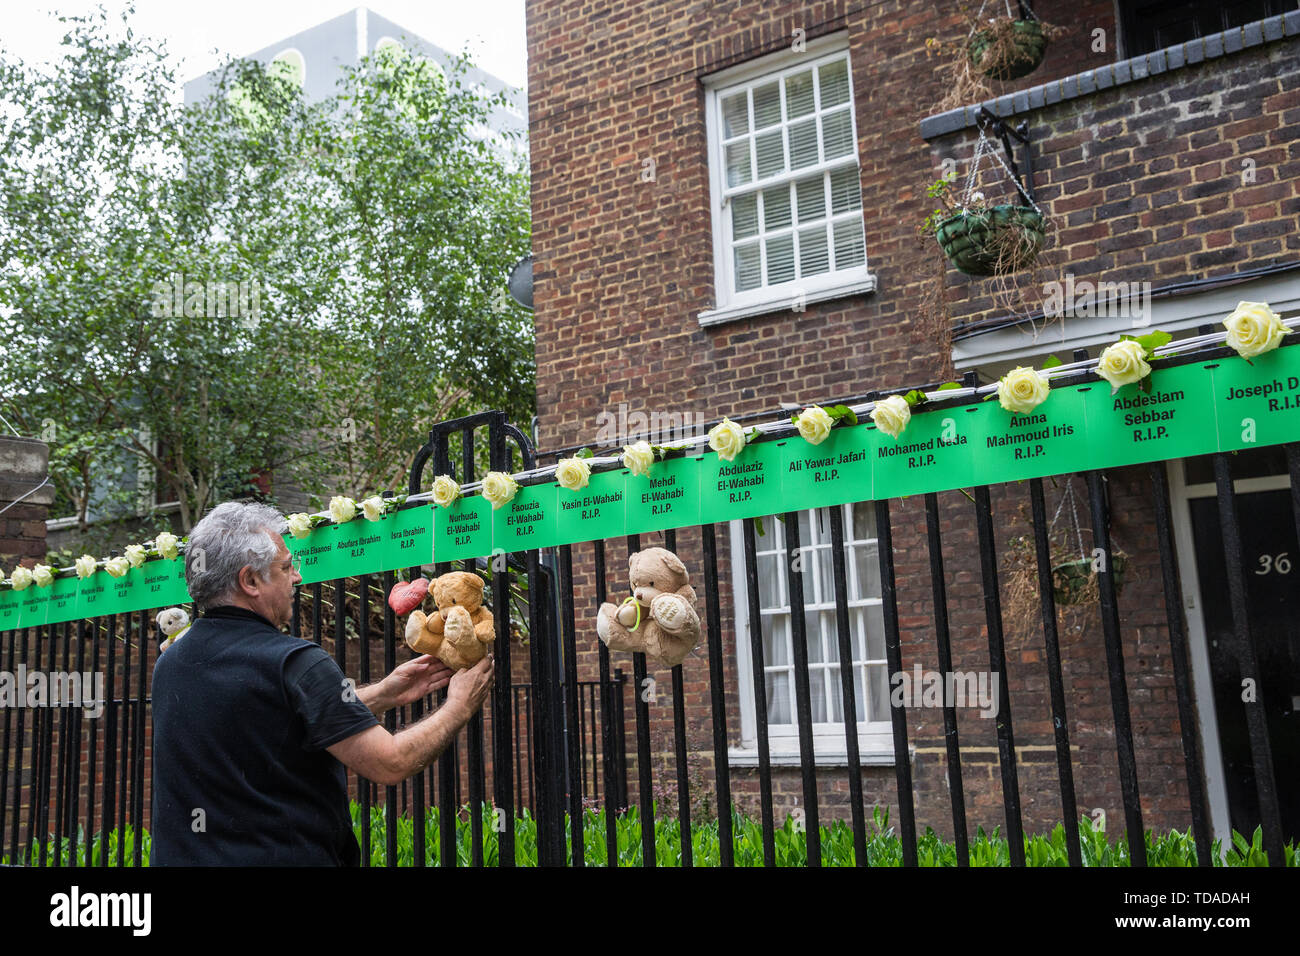 London, UK. 14 June, 2019. A man adjusts tributes to those who lost their lives in the Grenfell Tower fire beneath the tower on the second anniversary of the tragedy on 14th June 2017 which claimed the lives of 72 people and injured over 70 more. Credit: Mark Kerrison/Alamy Live News - Stock Image